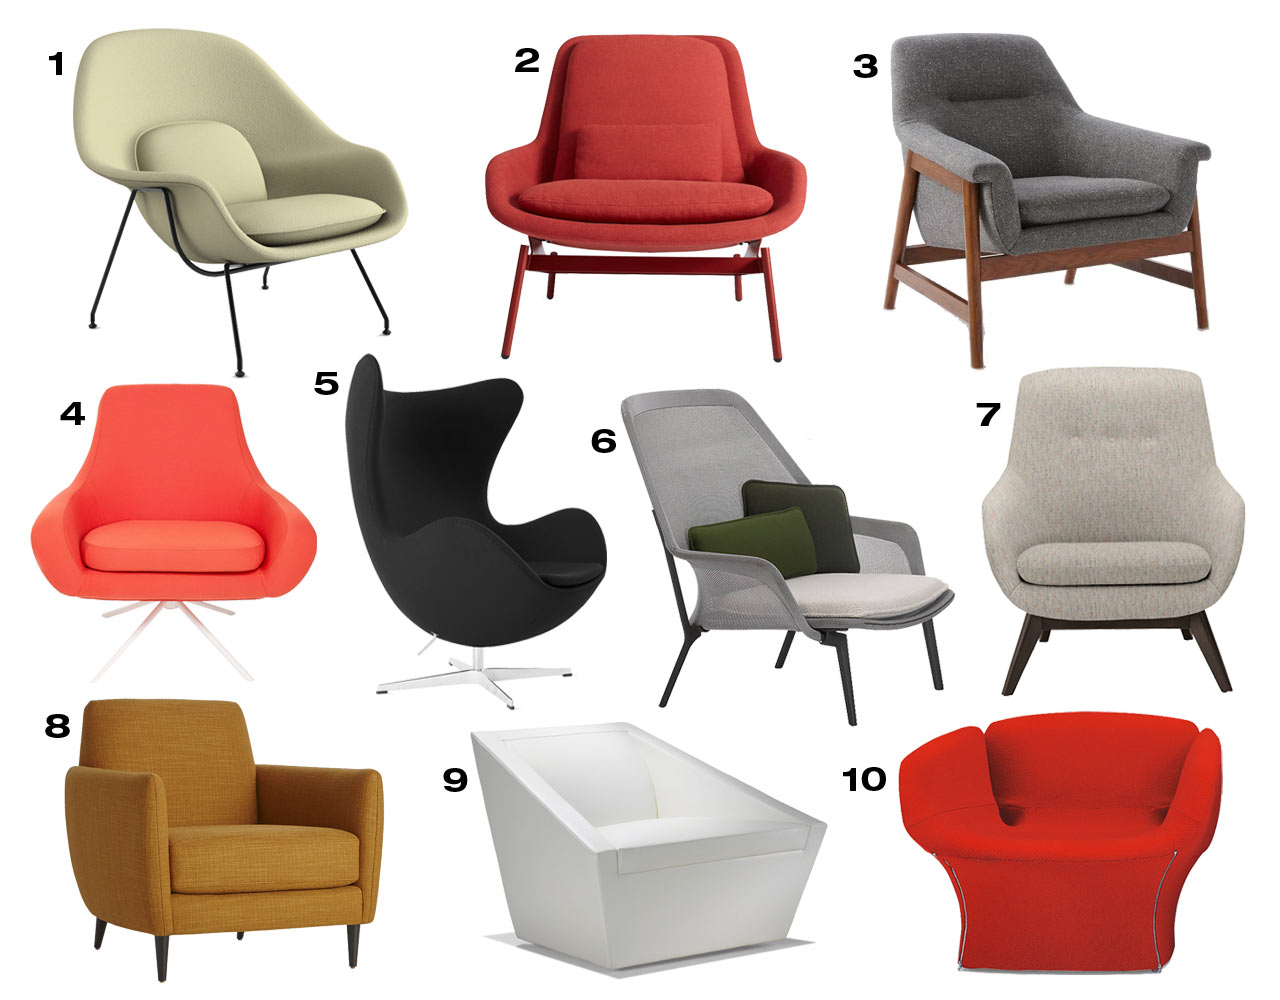 Wondrous Armchairs Get Armchairs Design Milk Lounge Chairs furniture Cozy Lounge Chairs